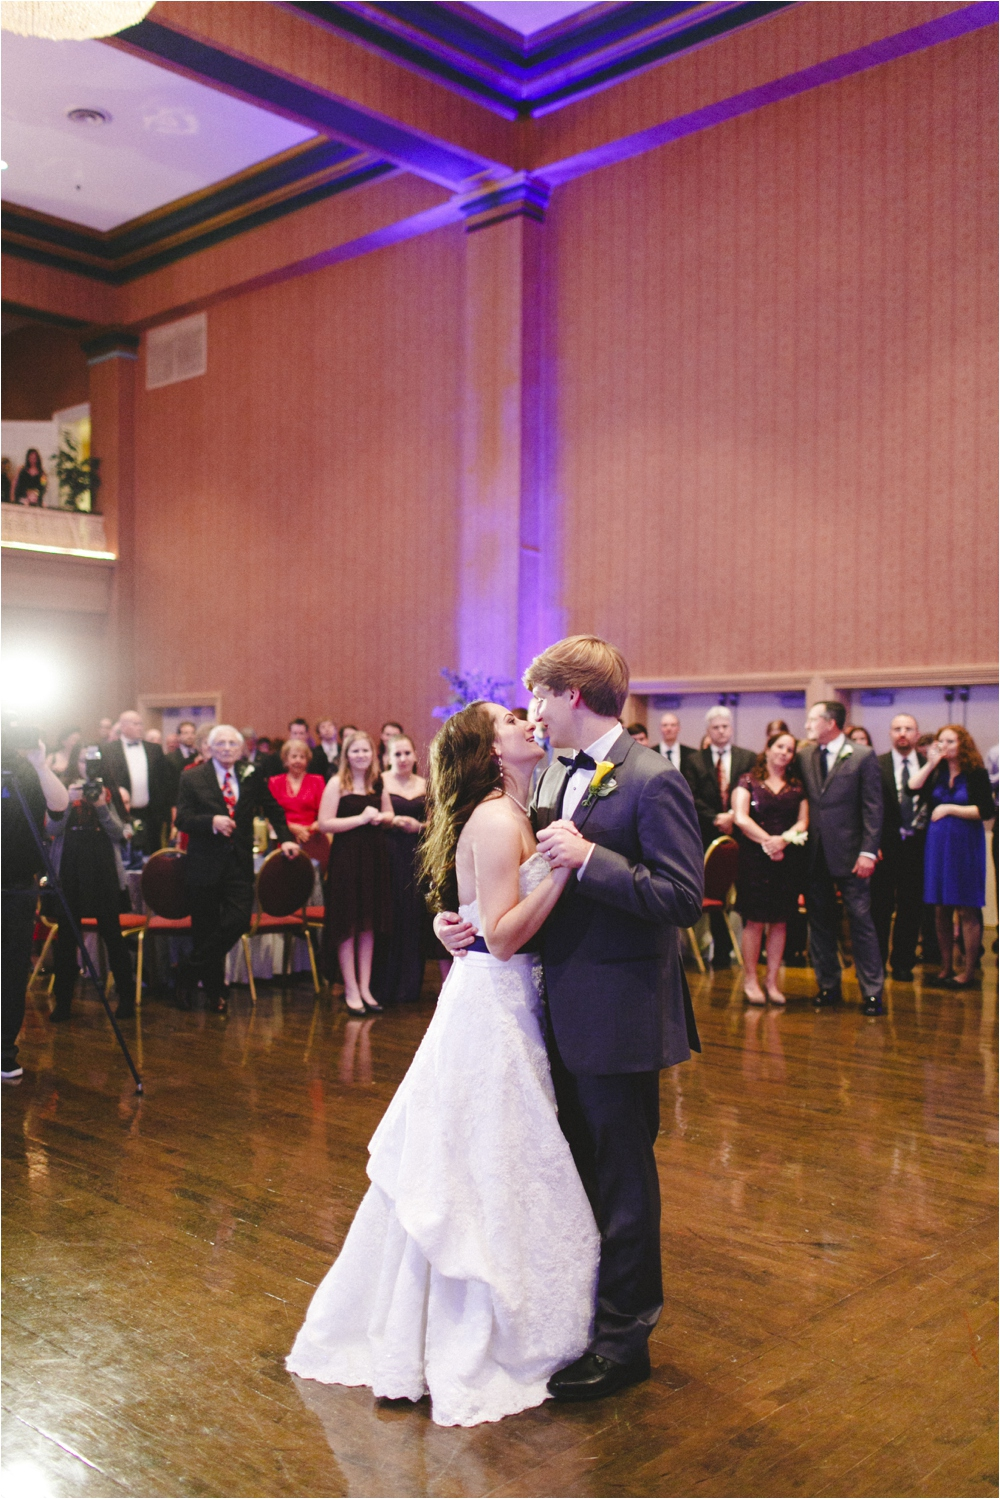 kristin-conner-richmond-va-winter-wedding_0043